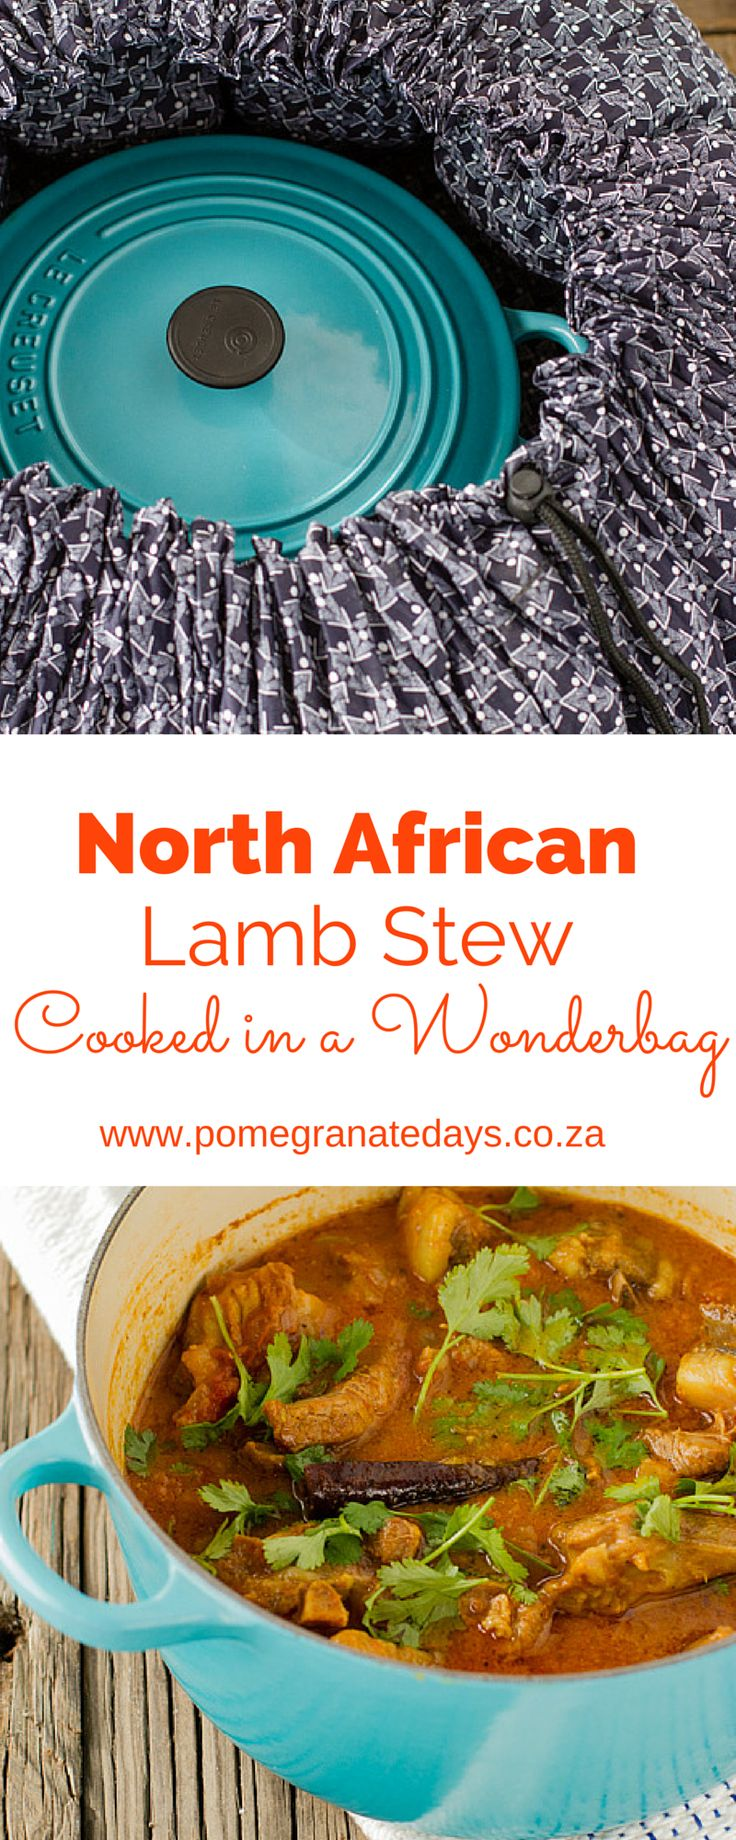 A Wonderbag works exactly like a crockpot or slow cooker without using electricity. This recipe for a meaty North African Lamb Stew will cook slowly in the Wonderbag or crockpot while you are busy during the day and reward you with a hot, flavourful dinner ready for the table.